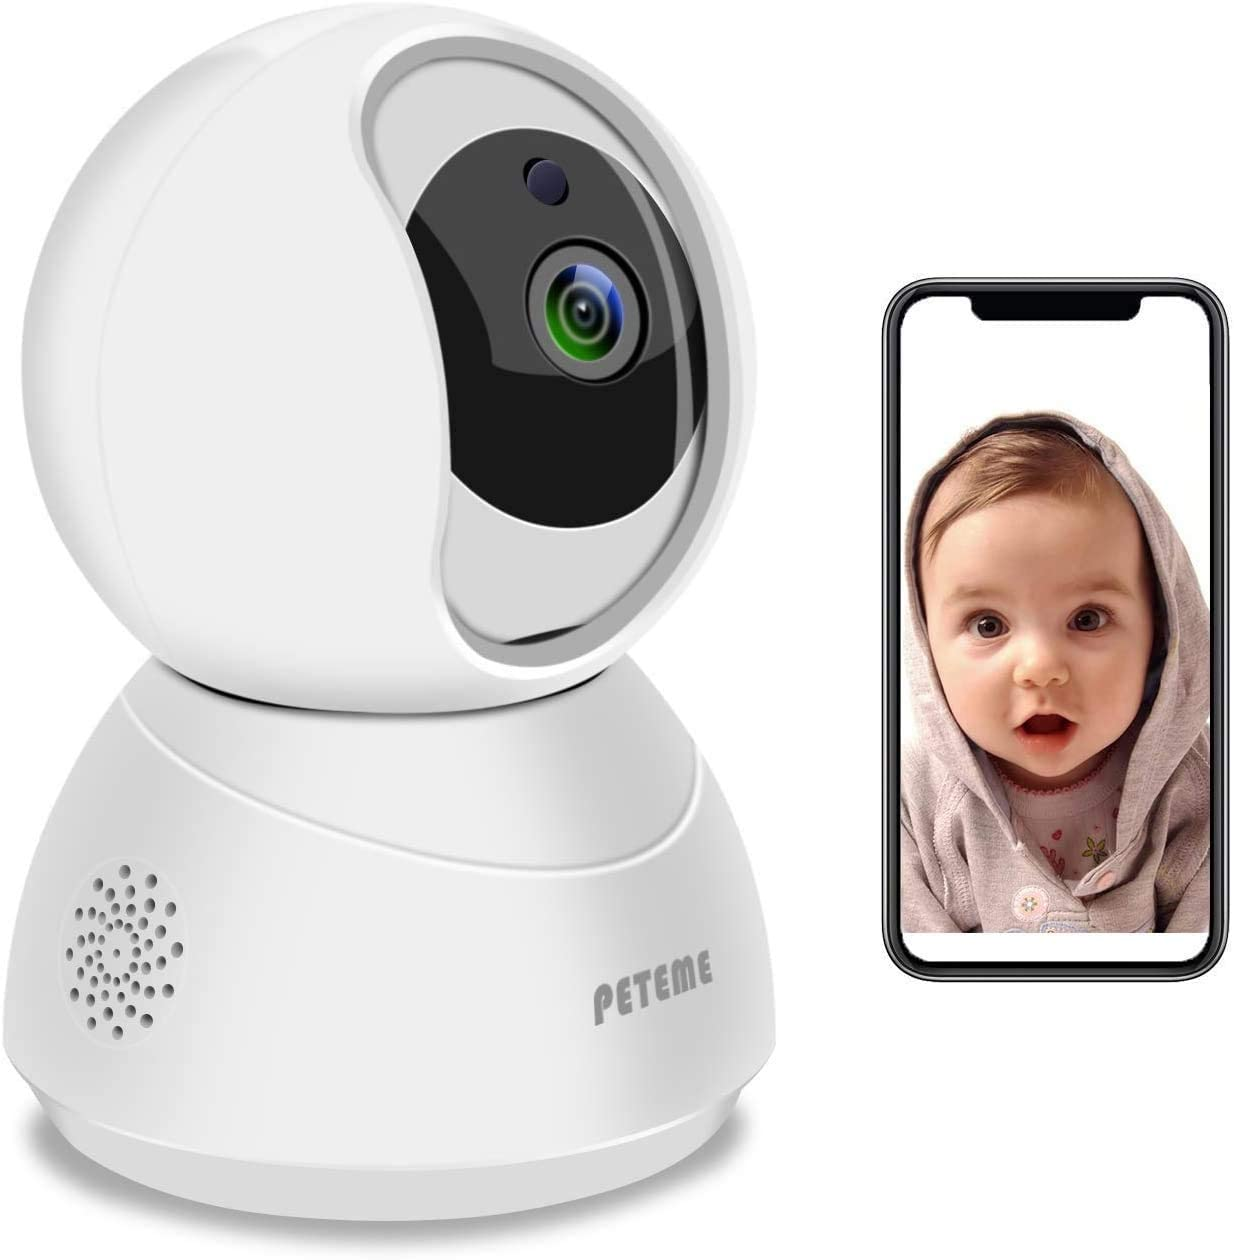 Amazon Com Baby Monitor Peteme 1080p Wifi Baby Monitor With Camera And Audio 2 Way Audio With Night Vision Cloud Service Available Security Camera Compatible With Ios Android Camera Photo